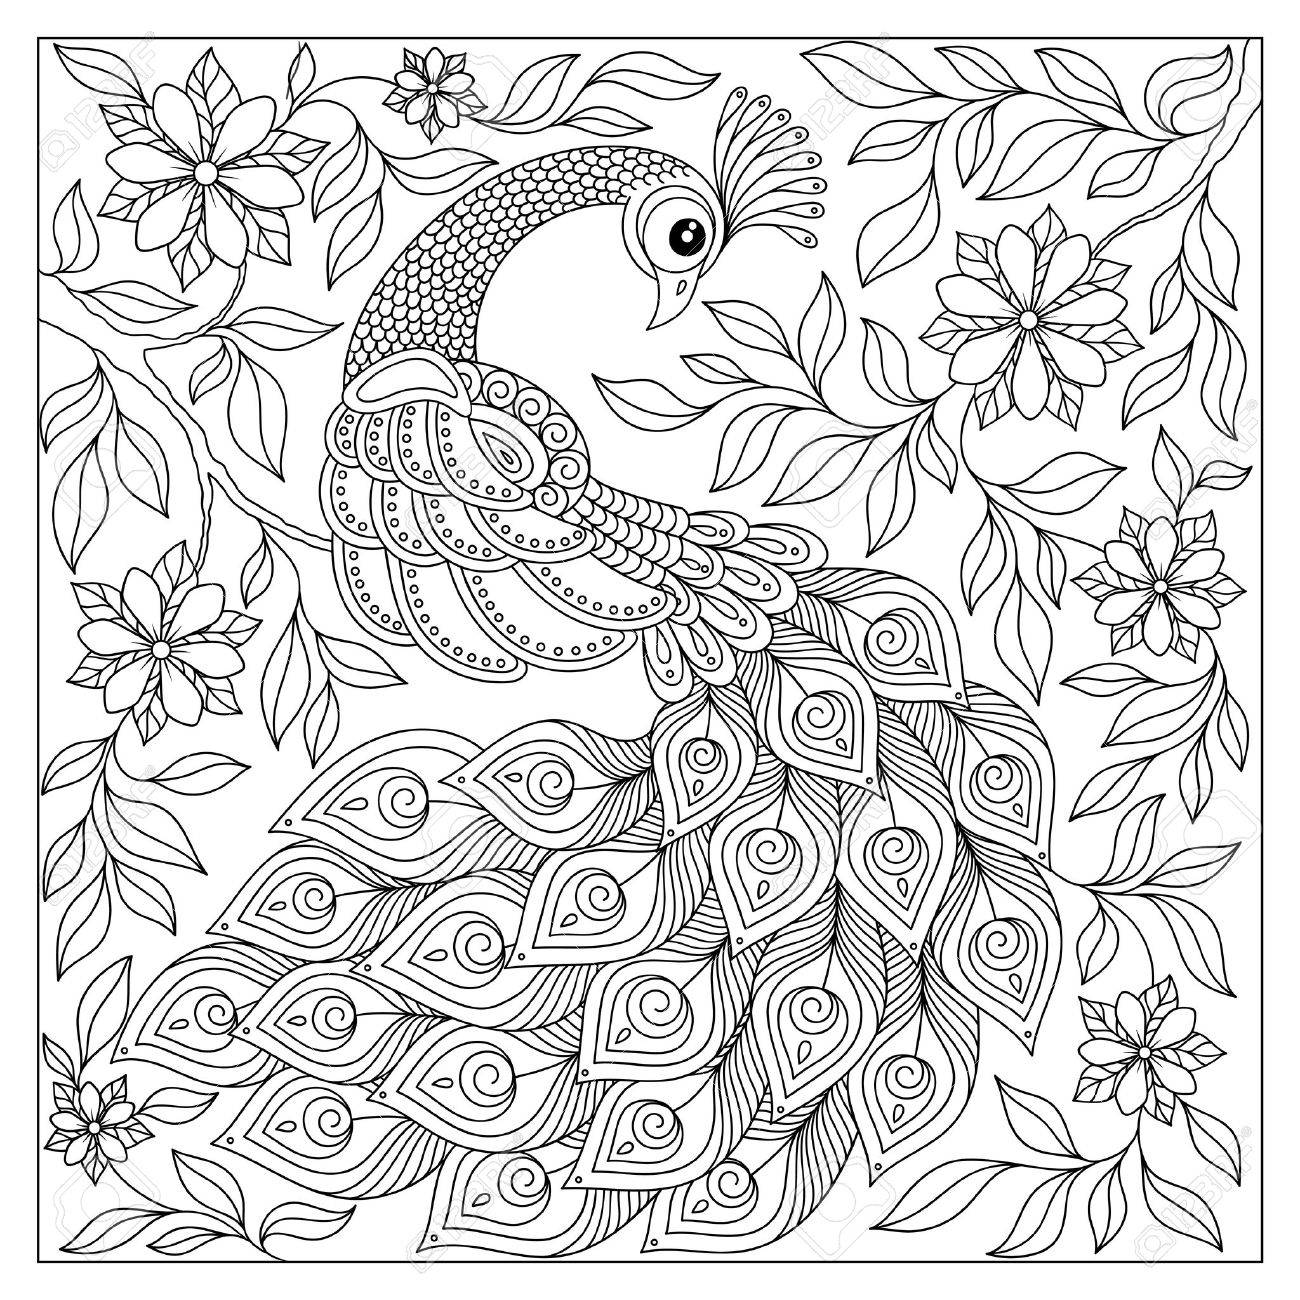 Vintage hand drawn pattern black and white doodle peacock. design. Sketch for adult antistress coloring page, tattoo, poster, print, t-shirt, invitation, cards, banners, flyers, calendars - 55847756